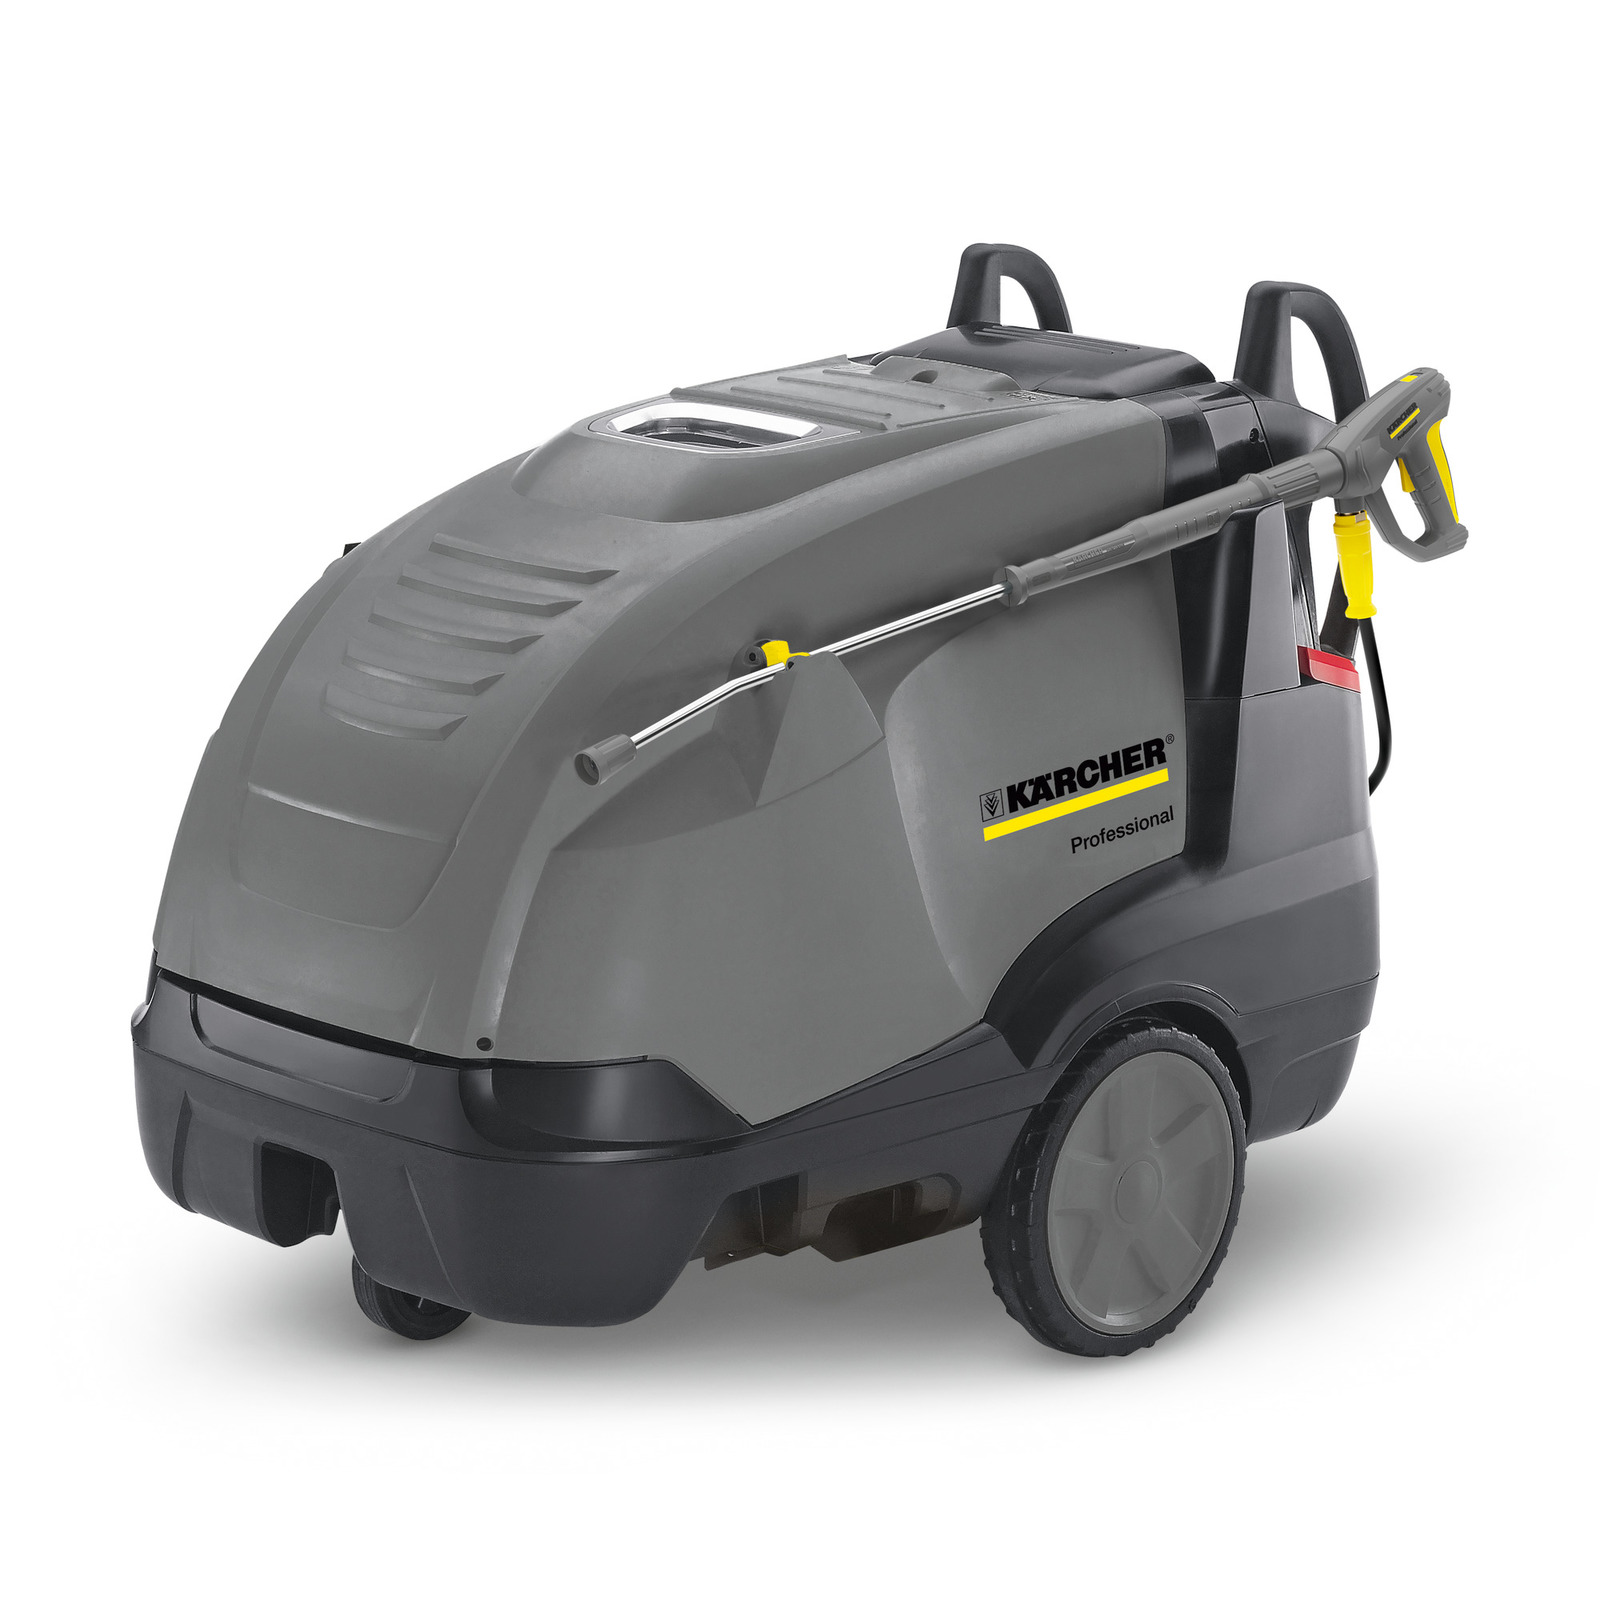 KARCHER - Hot Water High-Pressure Cleaners - HDS 12/18-4S